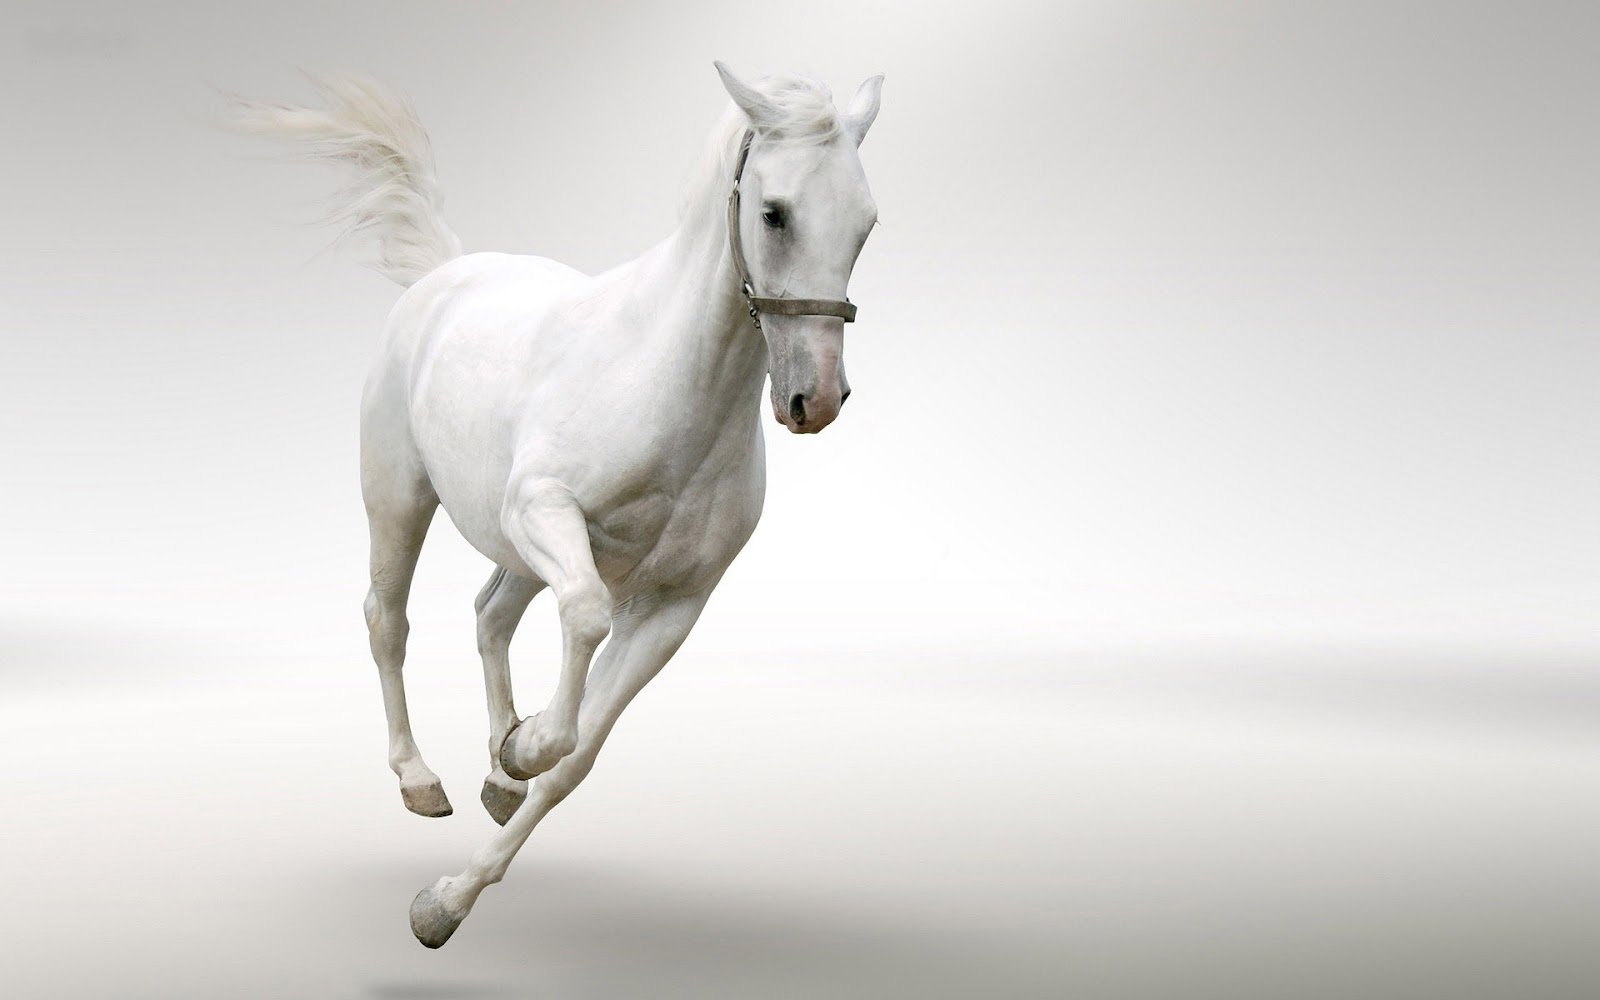 Hd wallpaper white background - White Horse Hd Wallpapers White Horse Hd Wallpapers White Horse